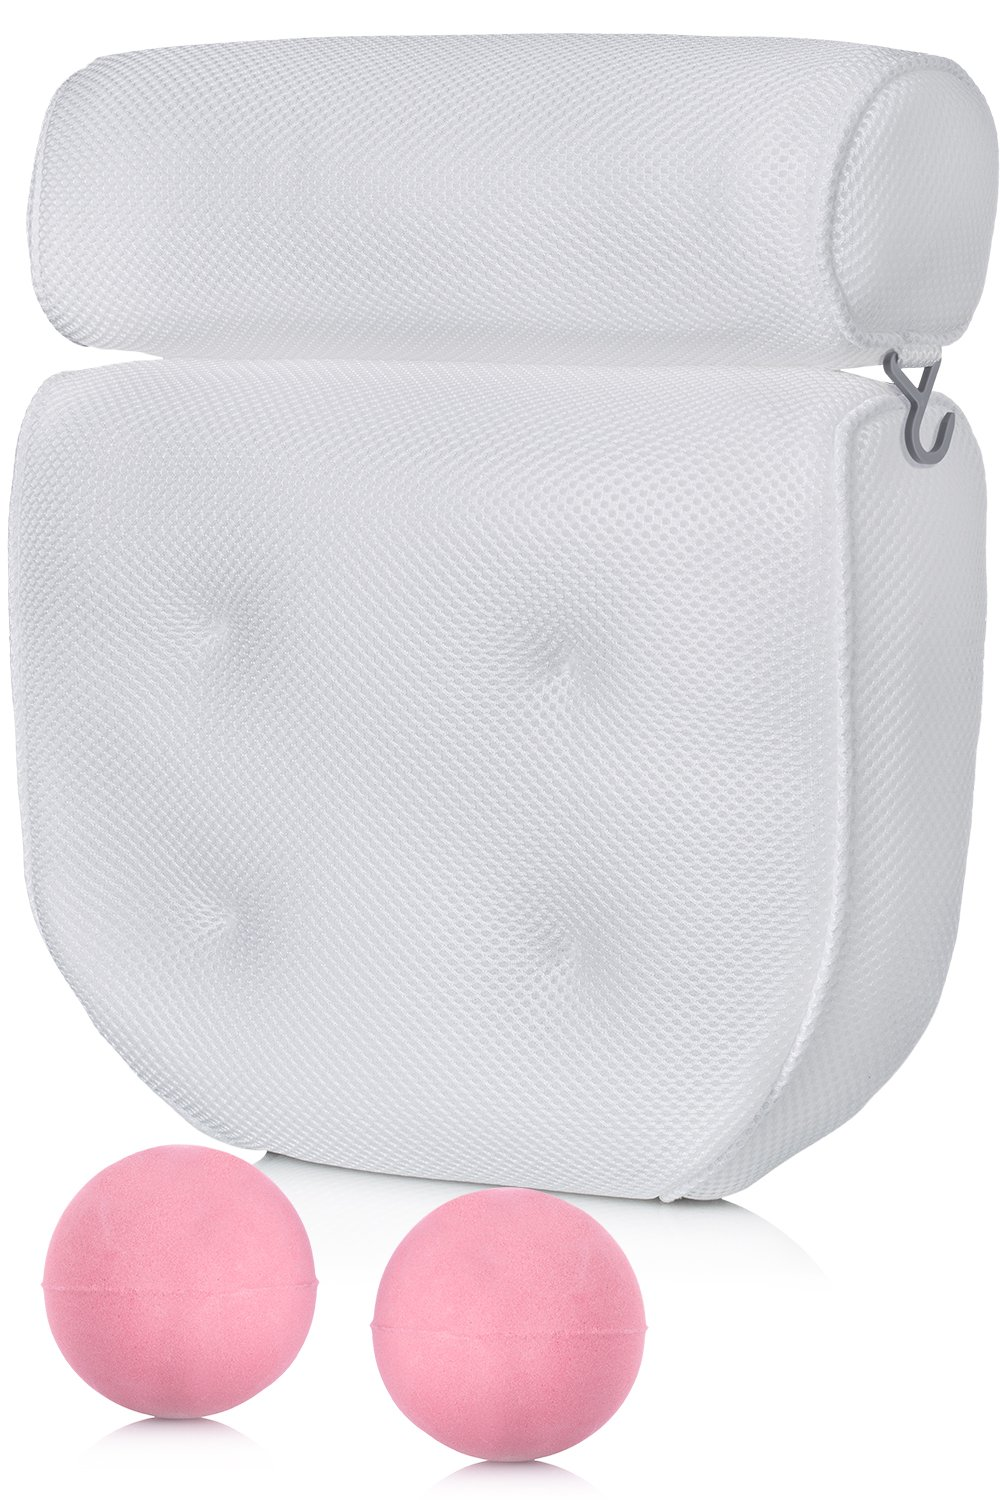 Best Rated in Bath Pillows & Helpful Customer Reviews - Amazon.com